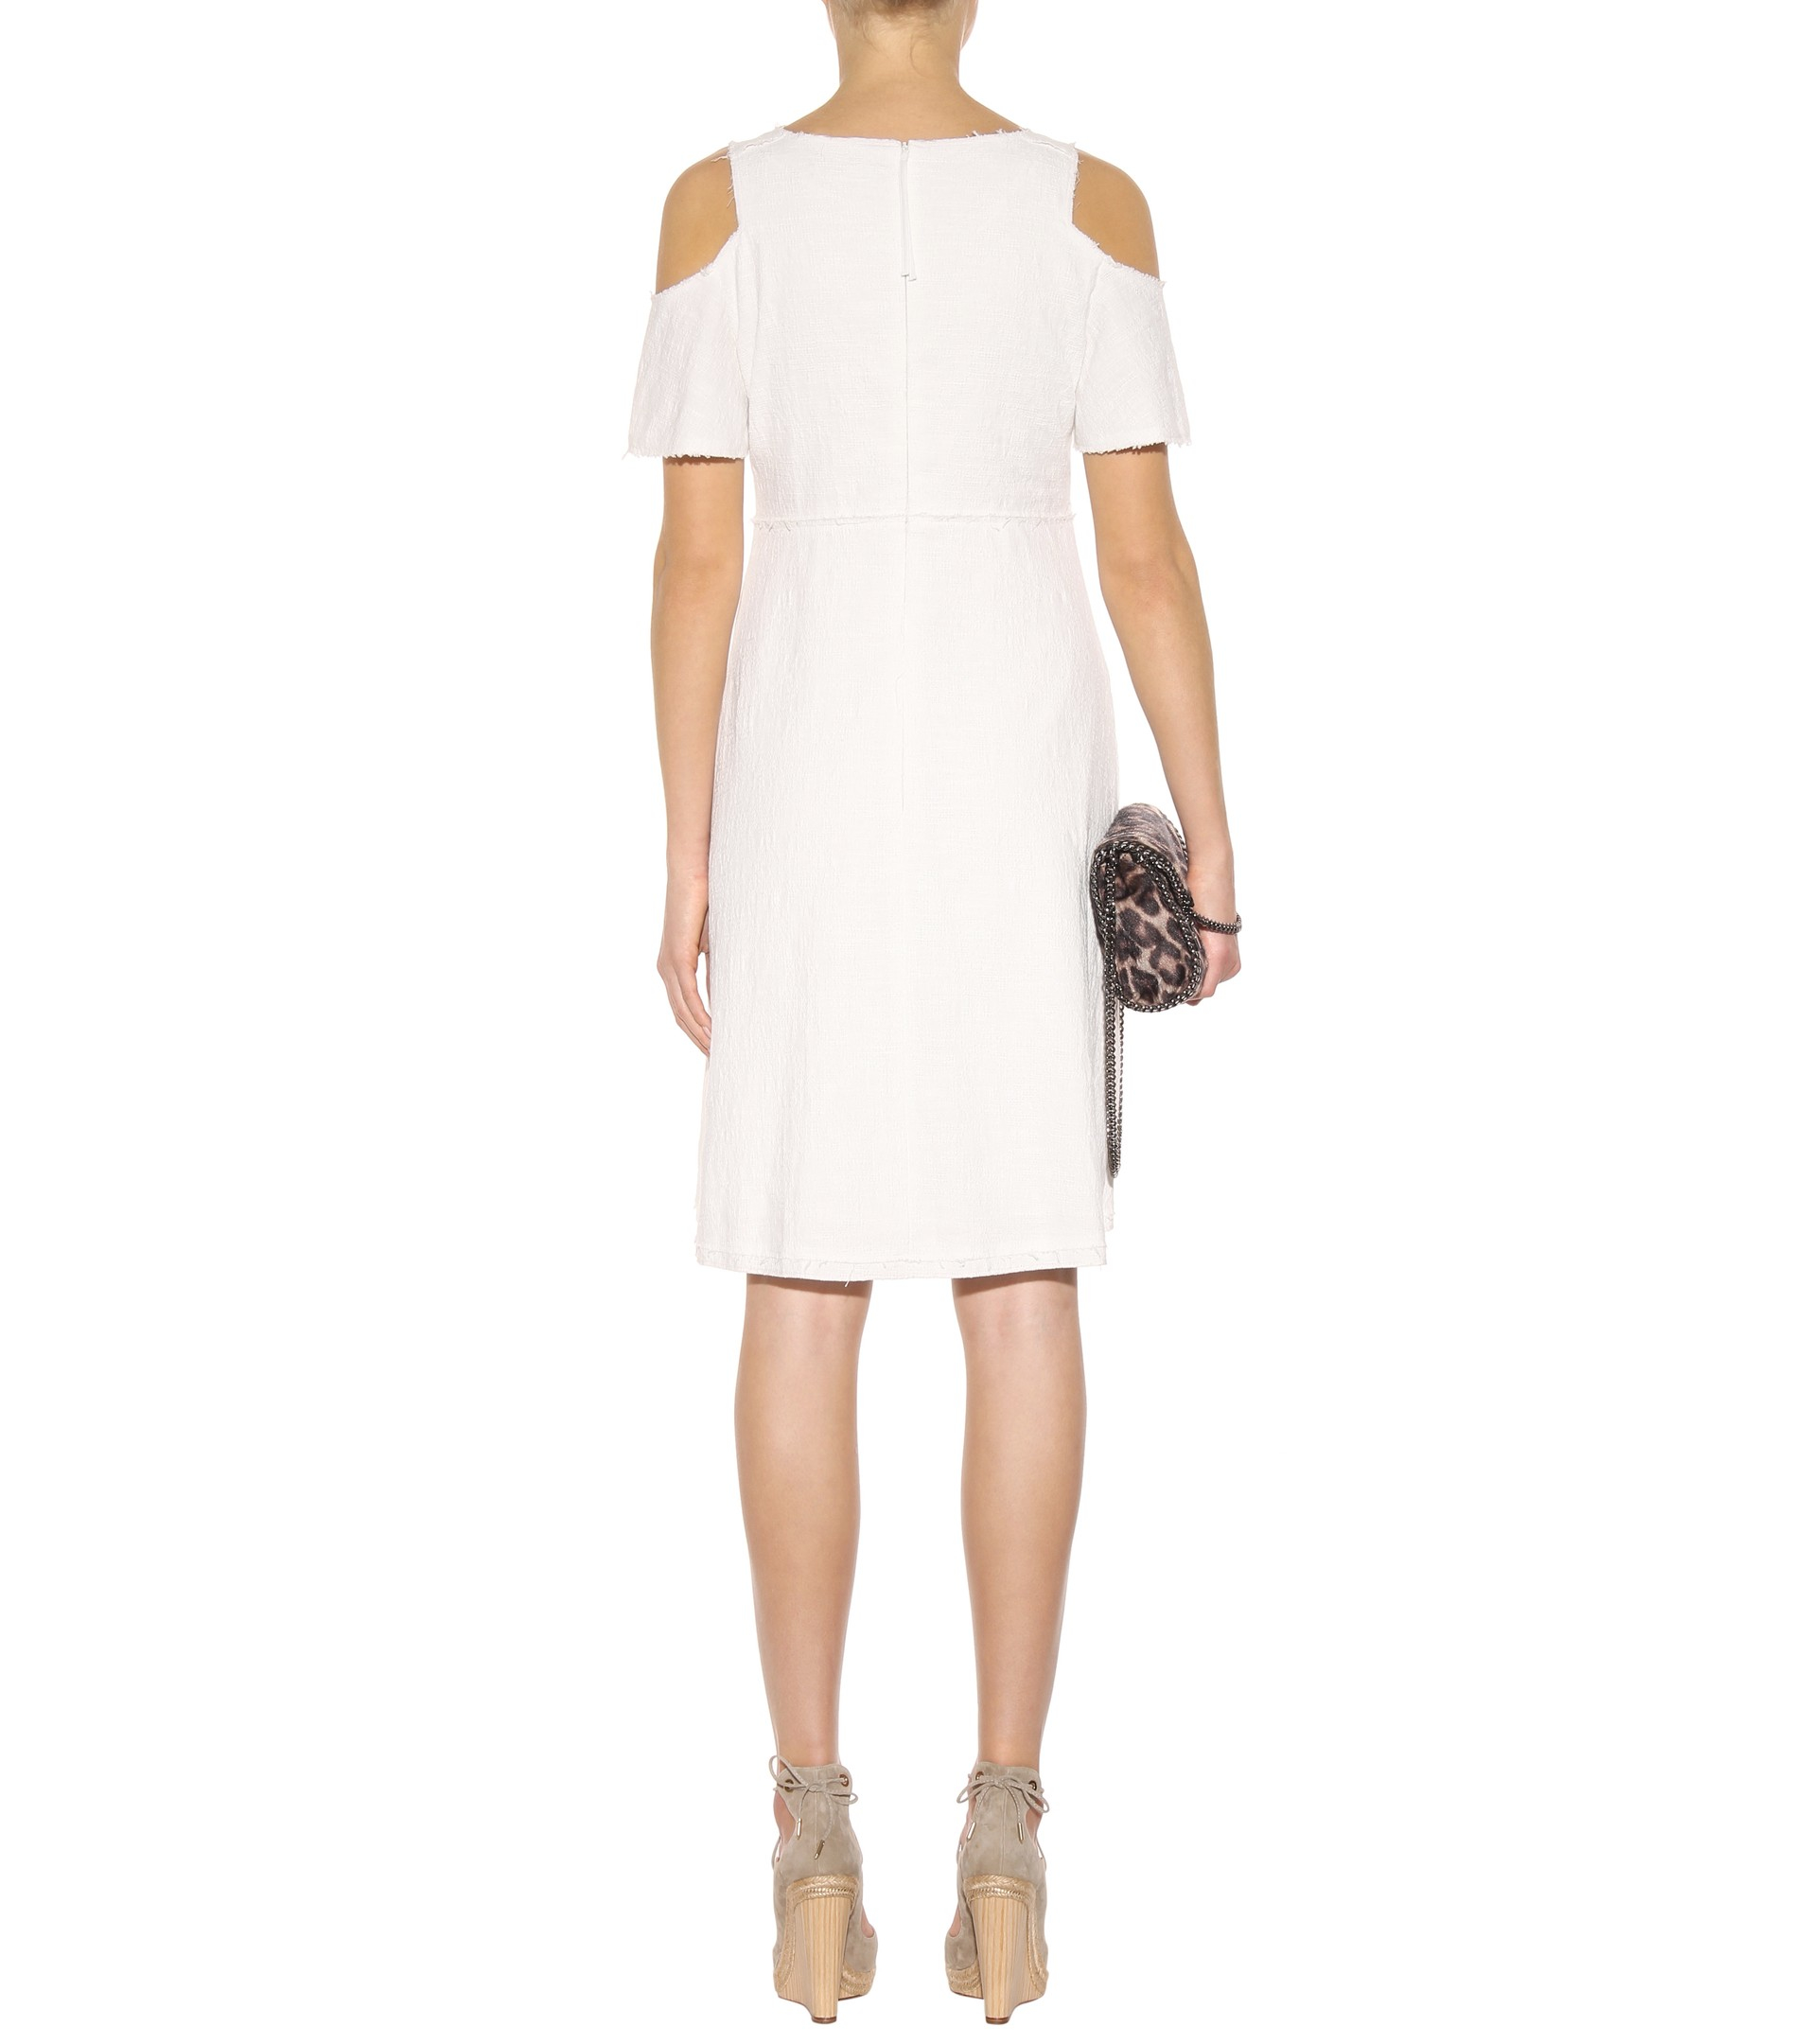 Nature Dress: Dorothee Schumacher Close To Nature Cotton Dress In